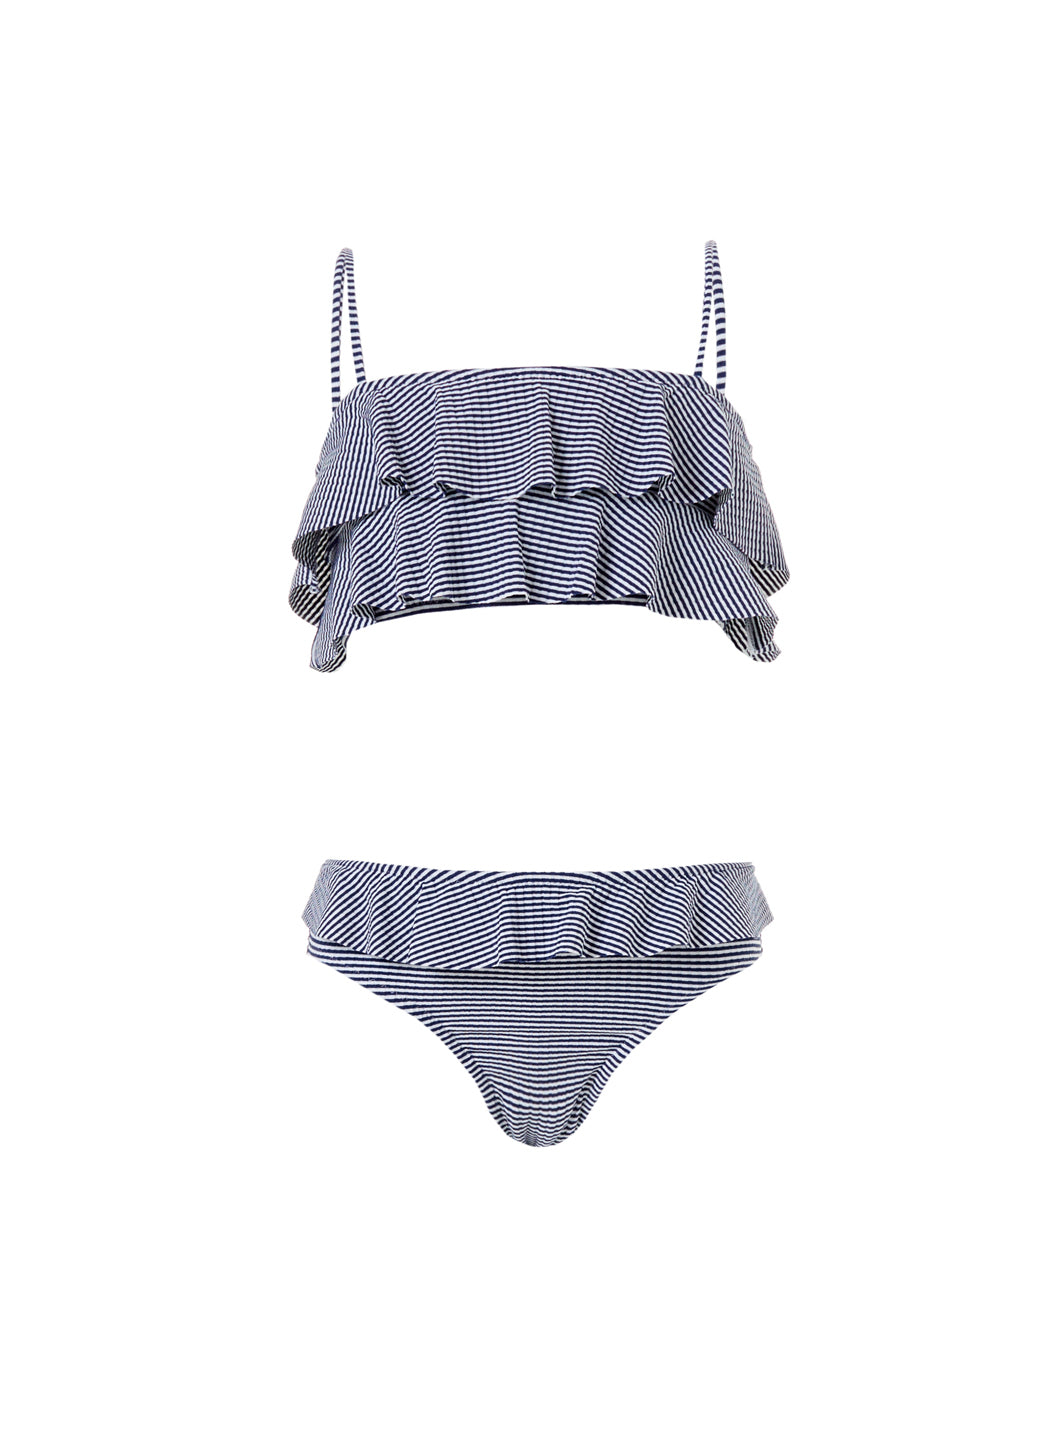 In gorgeous navy gingham, the Baby Noemie Navy Gingham Frill Bikini will be a favourite of your little one, with fun frill details! Order now! - Melissa Odabash Kids Bikinis